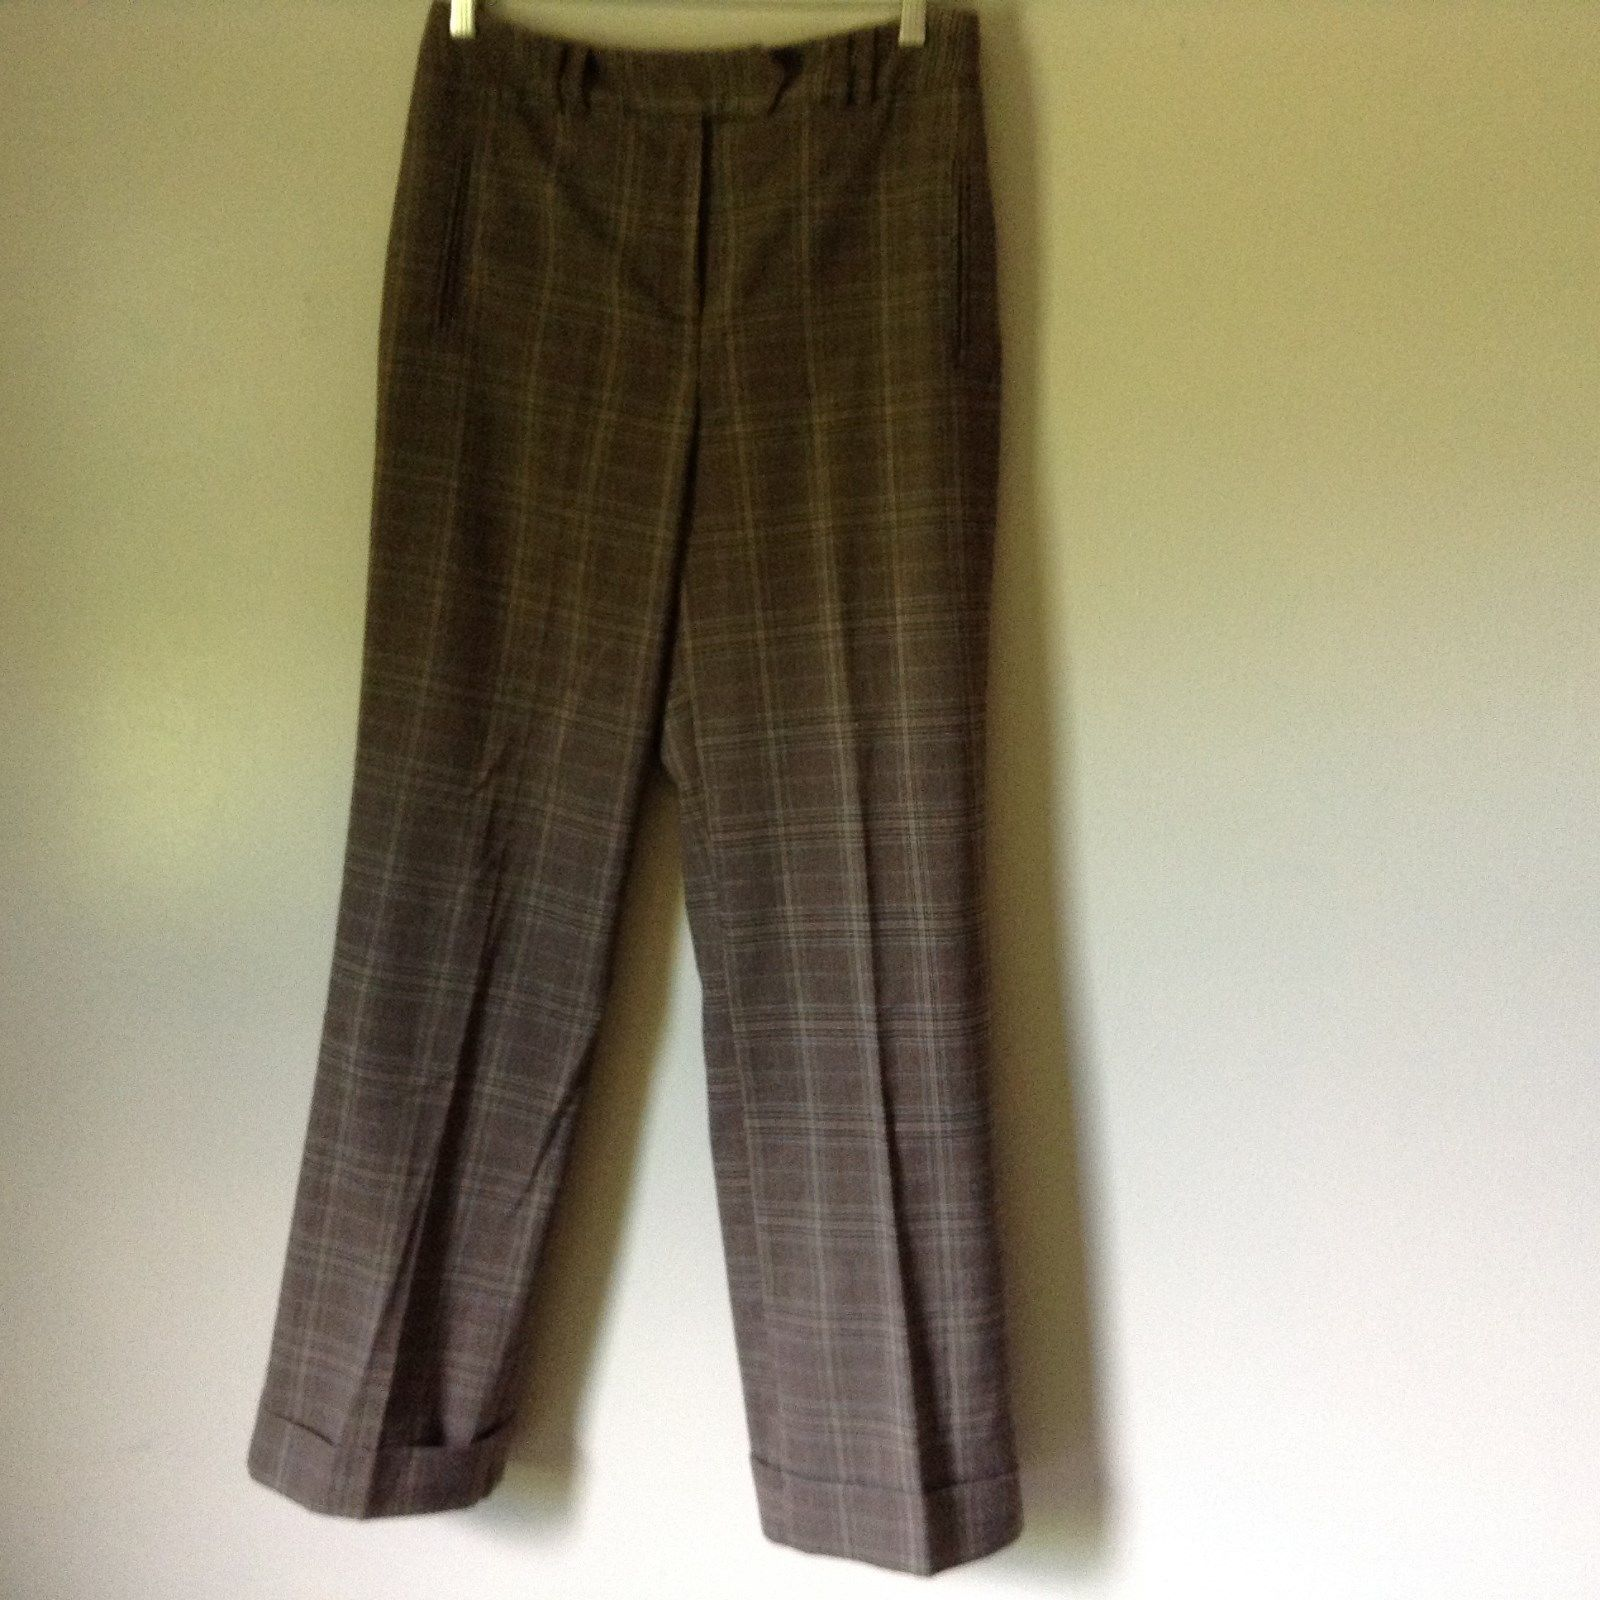 Larry Levine Stretch Casual Pants Size 10 Plaid Brown Tan Green